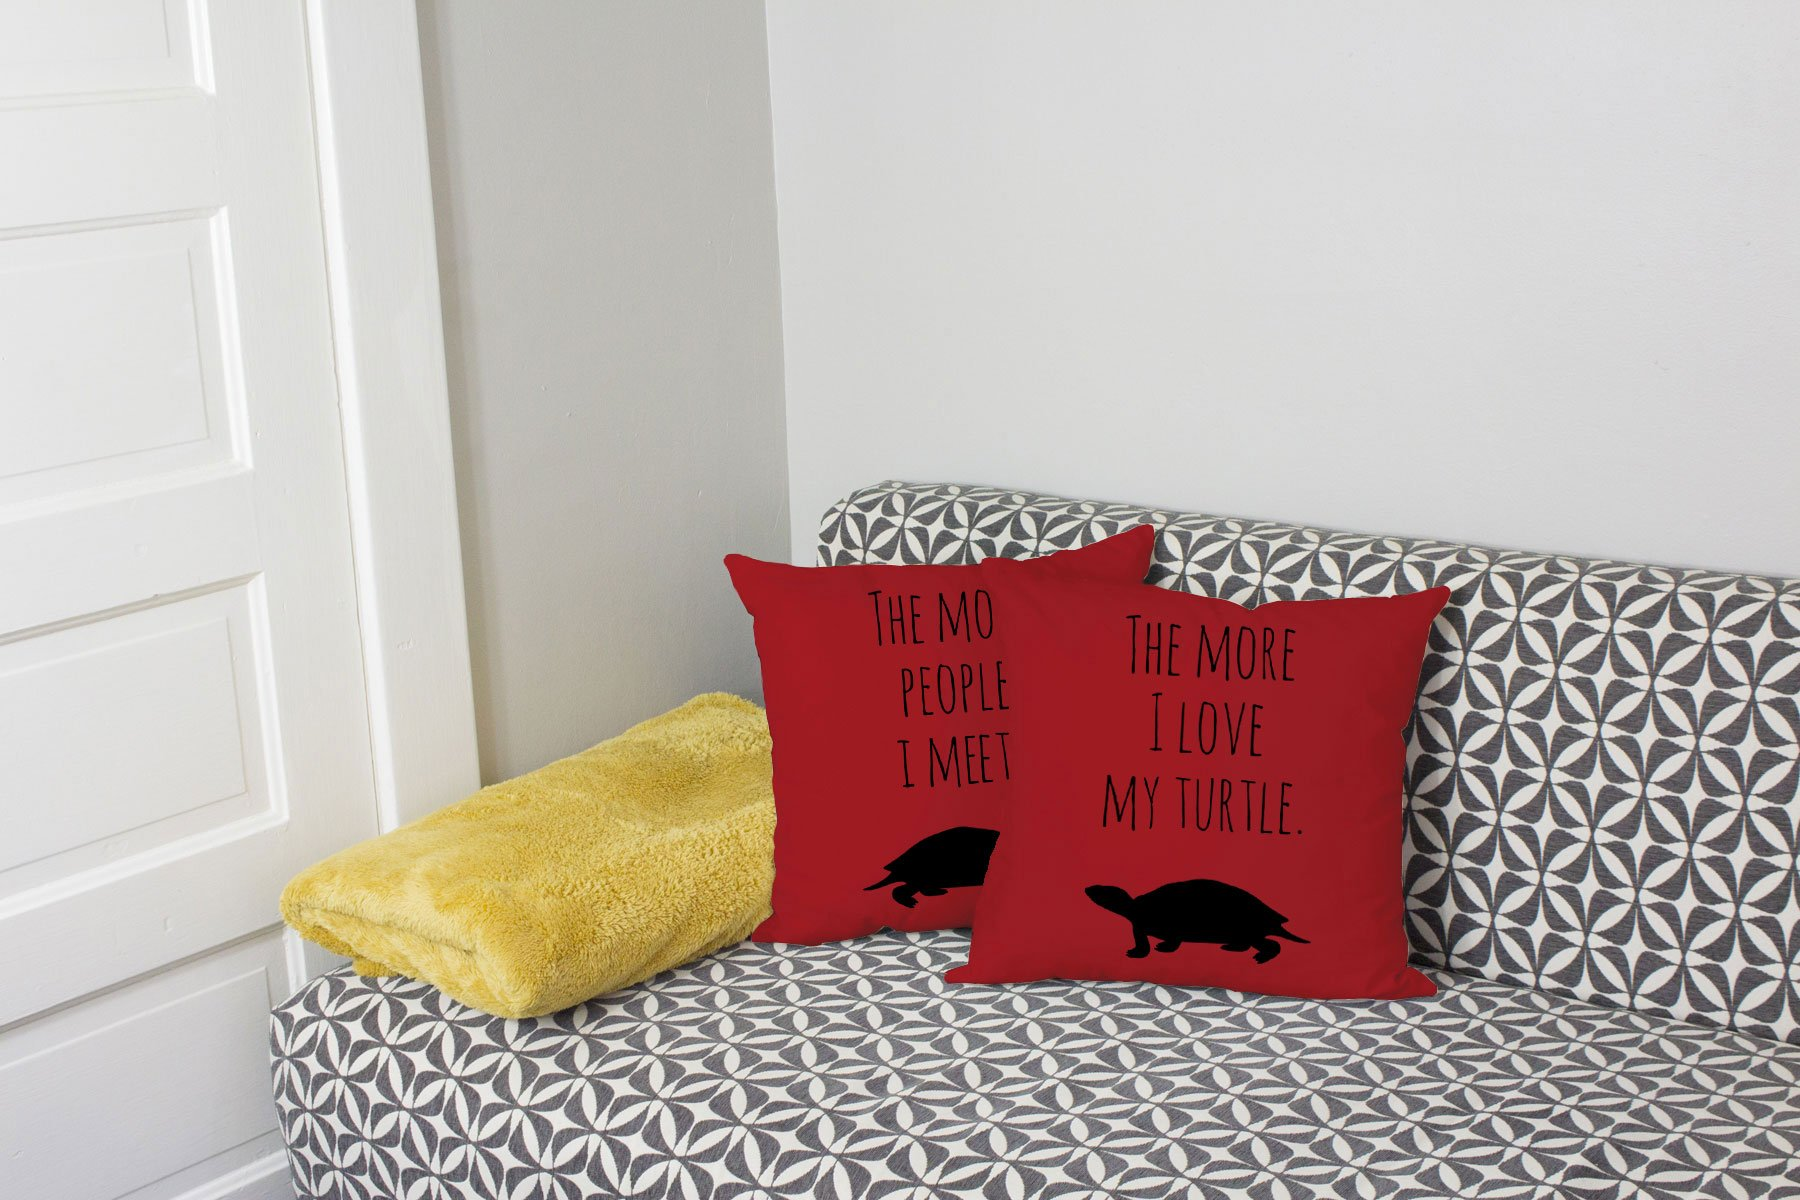 Set of 2 RoomCraft I Love My Turtle Throw Pillows 20x20 Square Red Cotton Cushions by RoomCraft (Image #2)